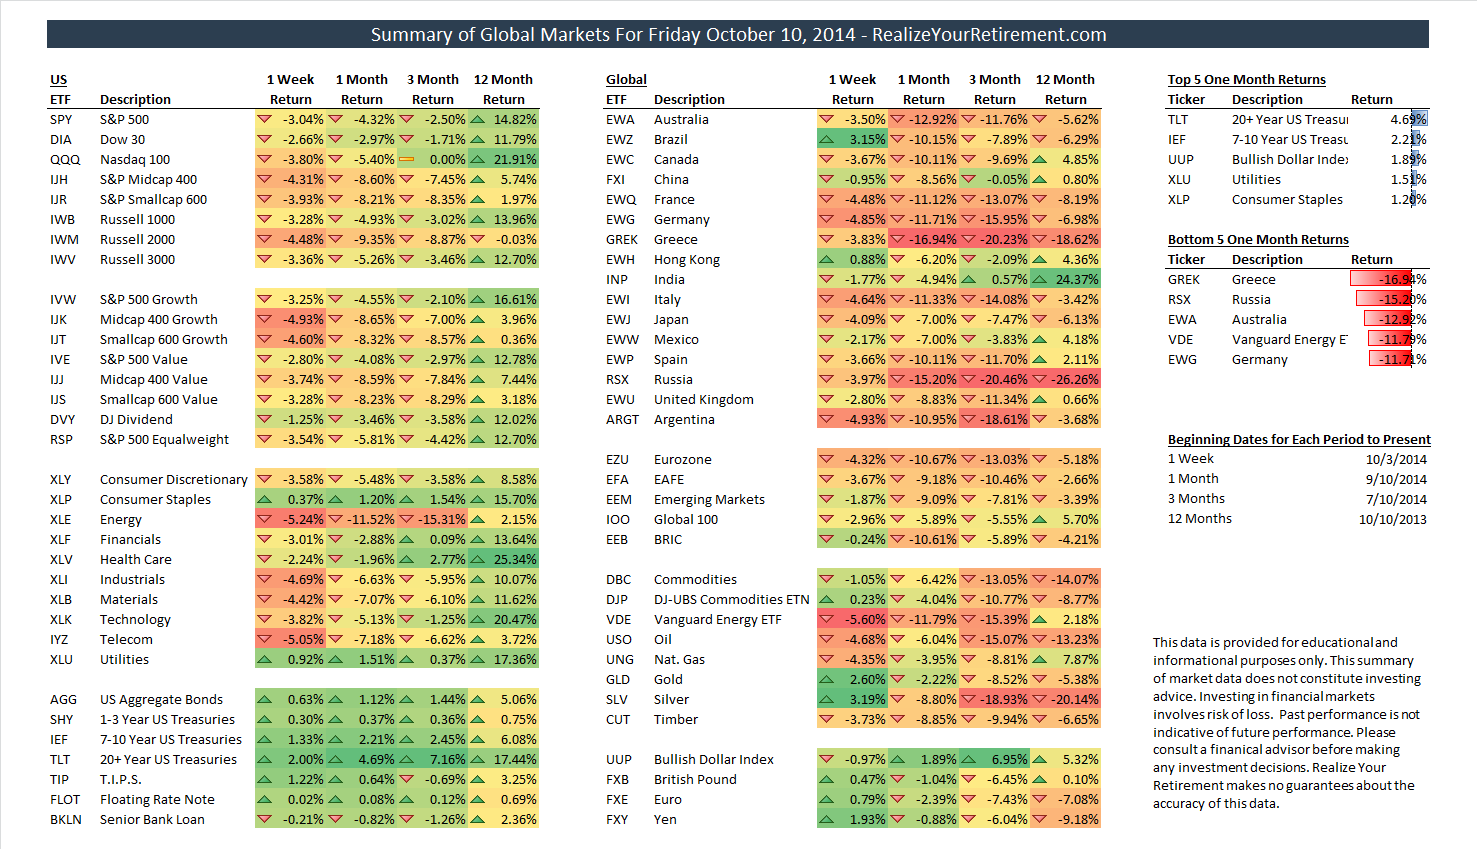 Global Market Summary for October 10, 2014